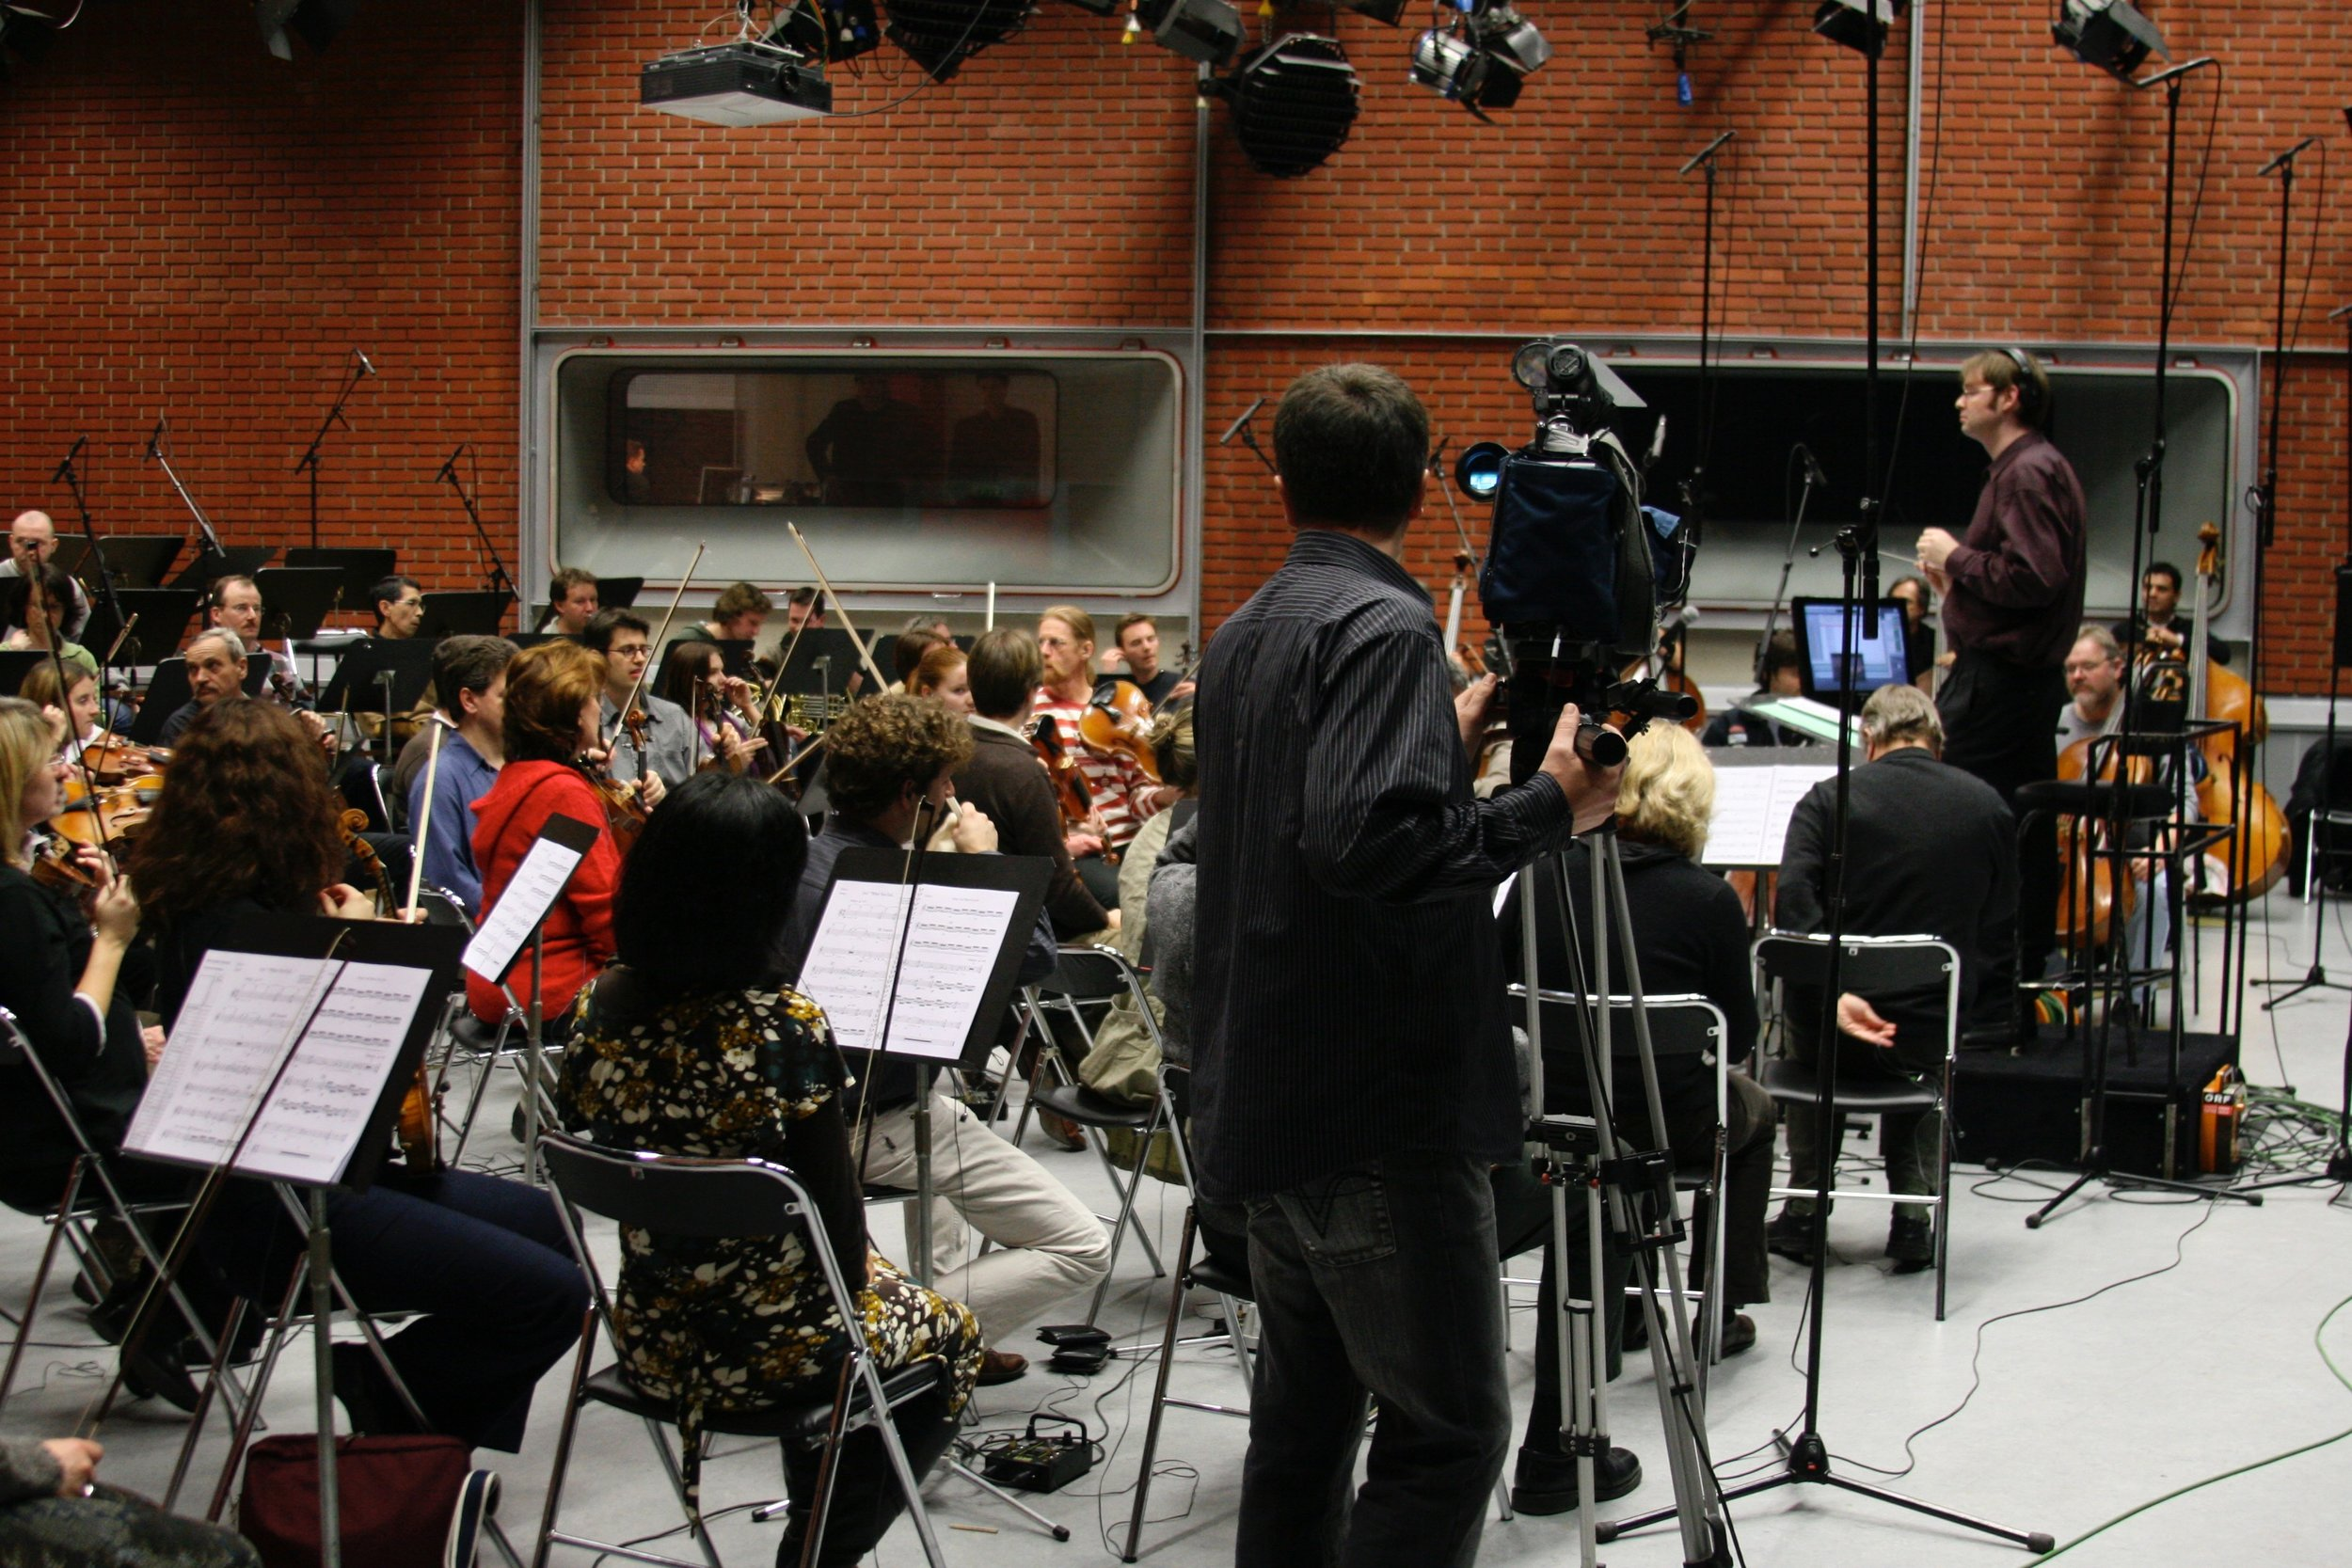 Rehearsing the Bruckner Orchestra in Linz